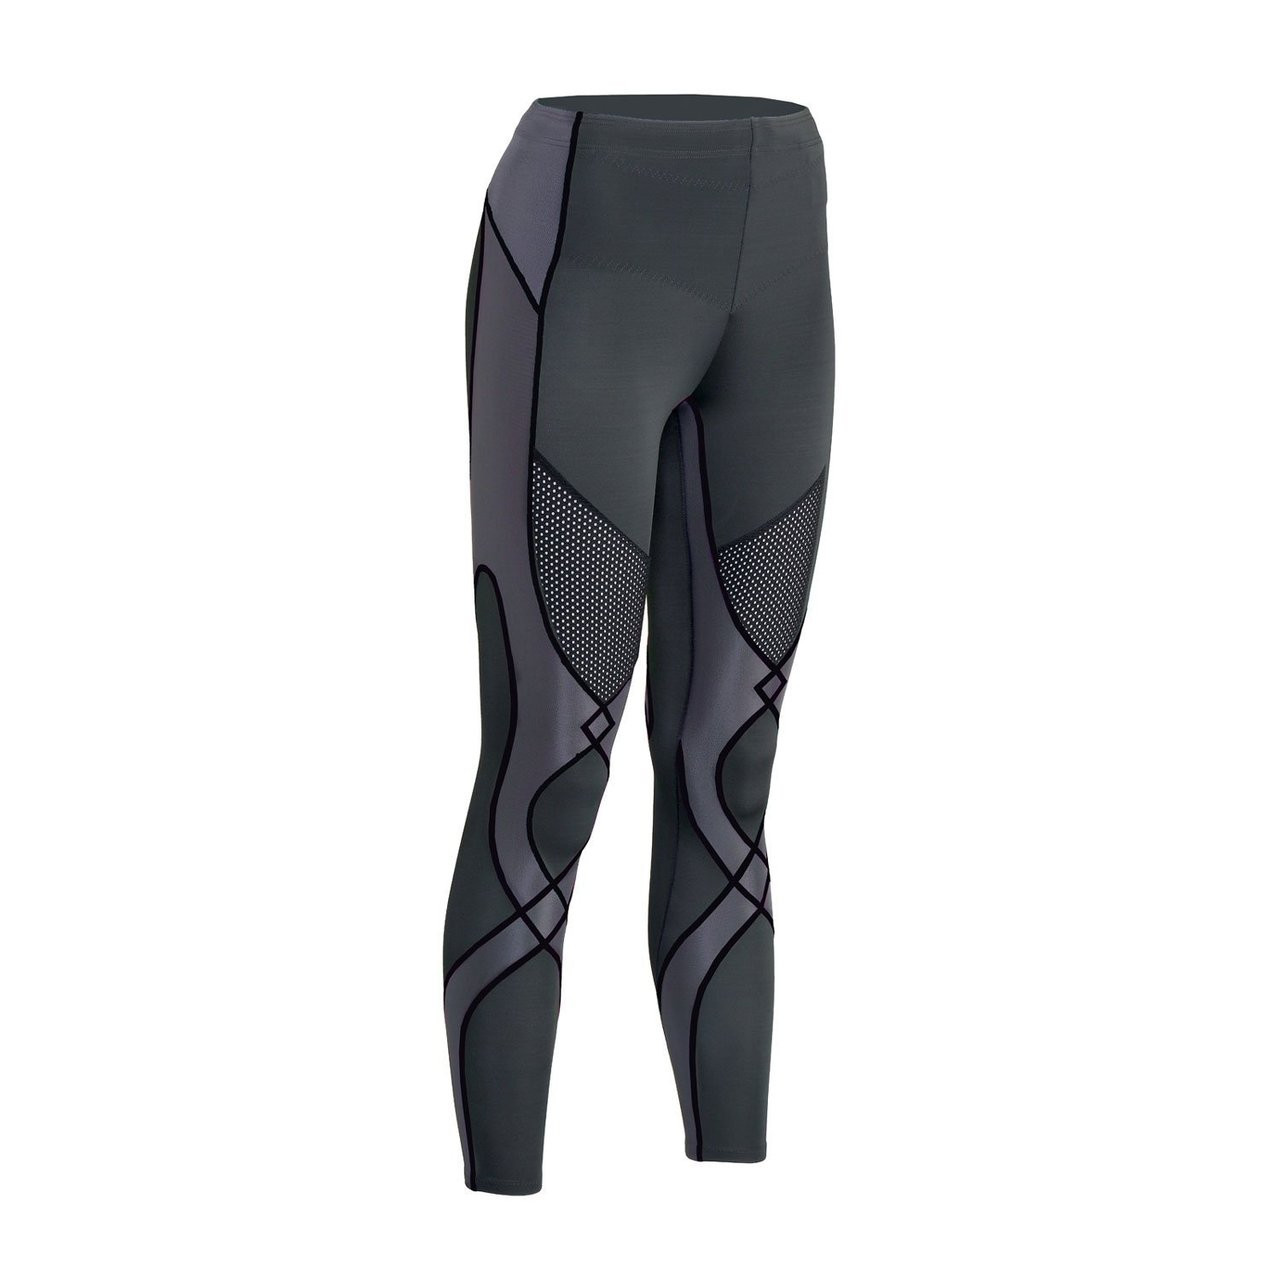 CW-X Women's Stabilyx Ventilator Tight - 2019 price